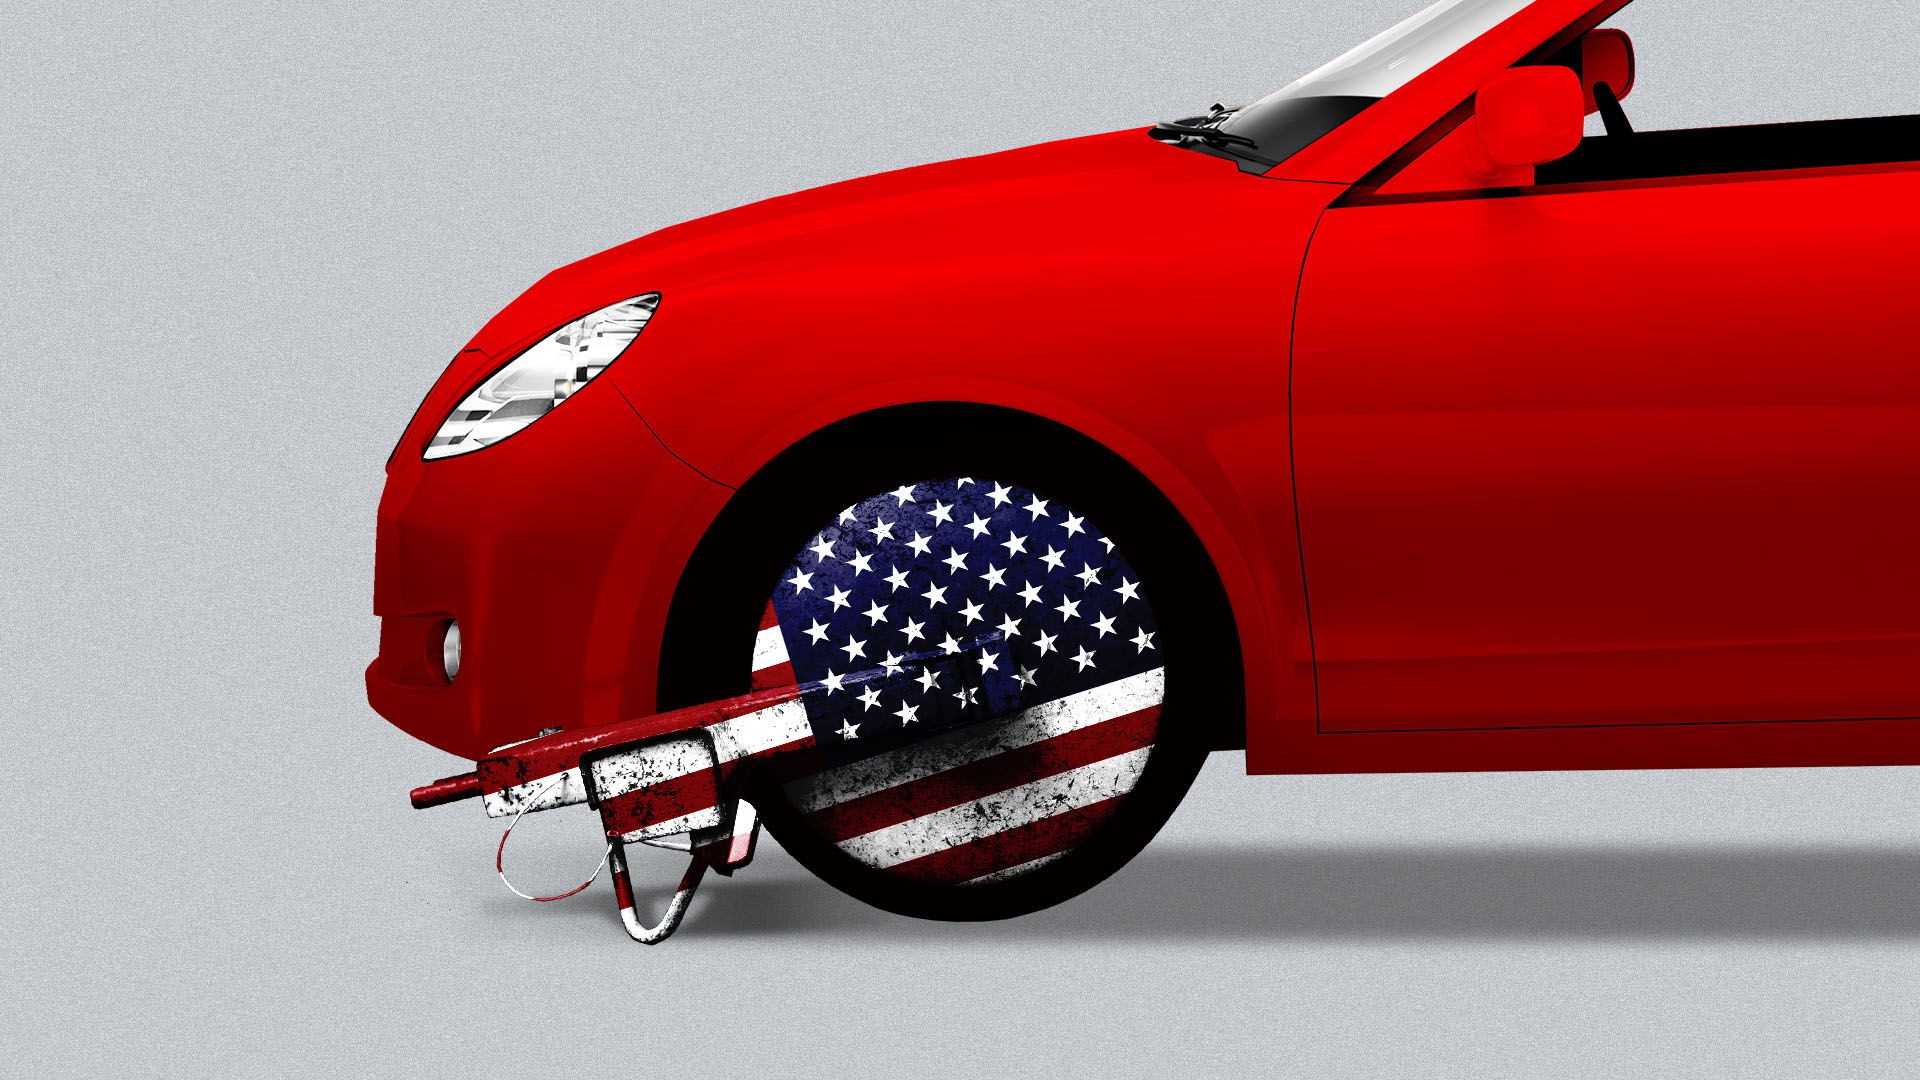 Illustration of of red car with an American flag boot on the tire